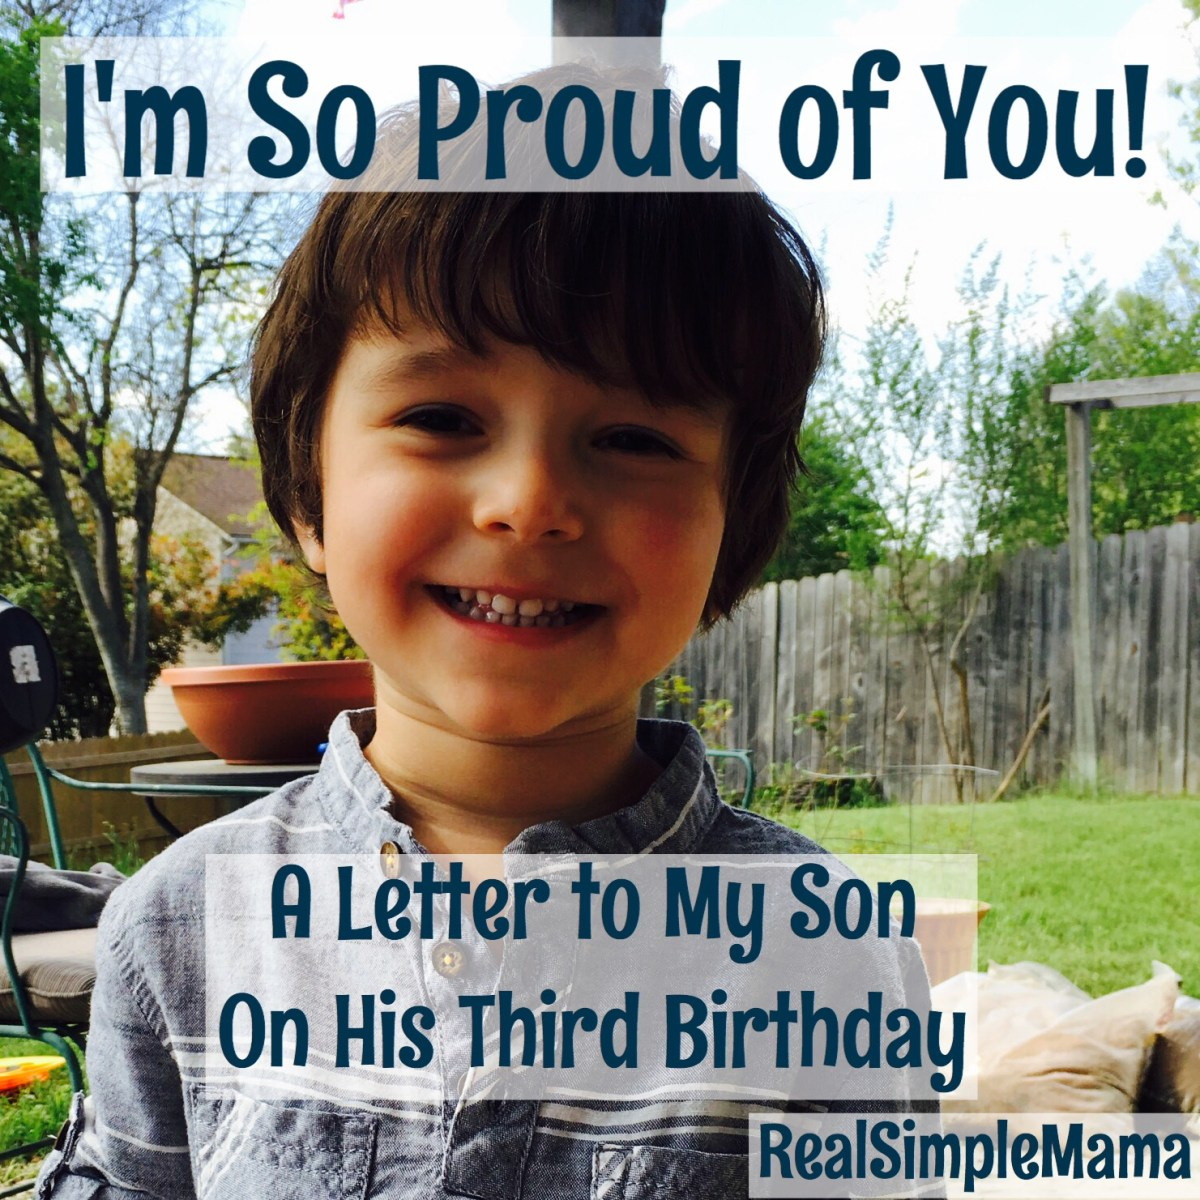 I'm So Proud of You: A Letter to My Son On His Third Birthday